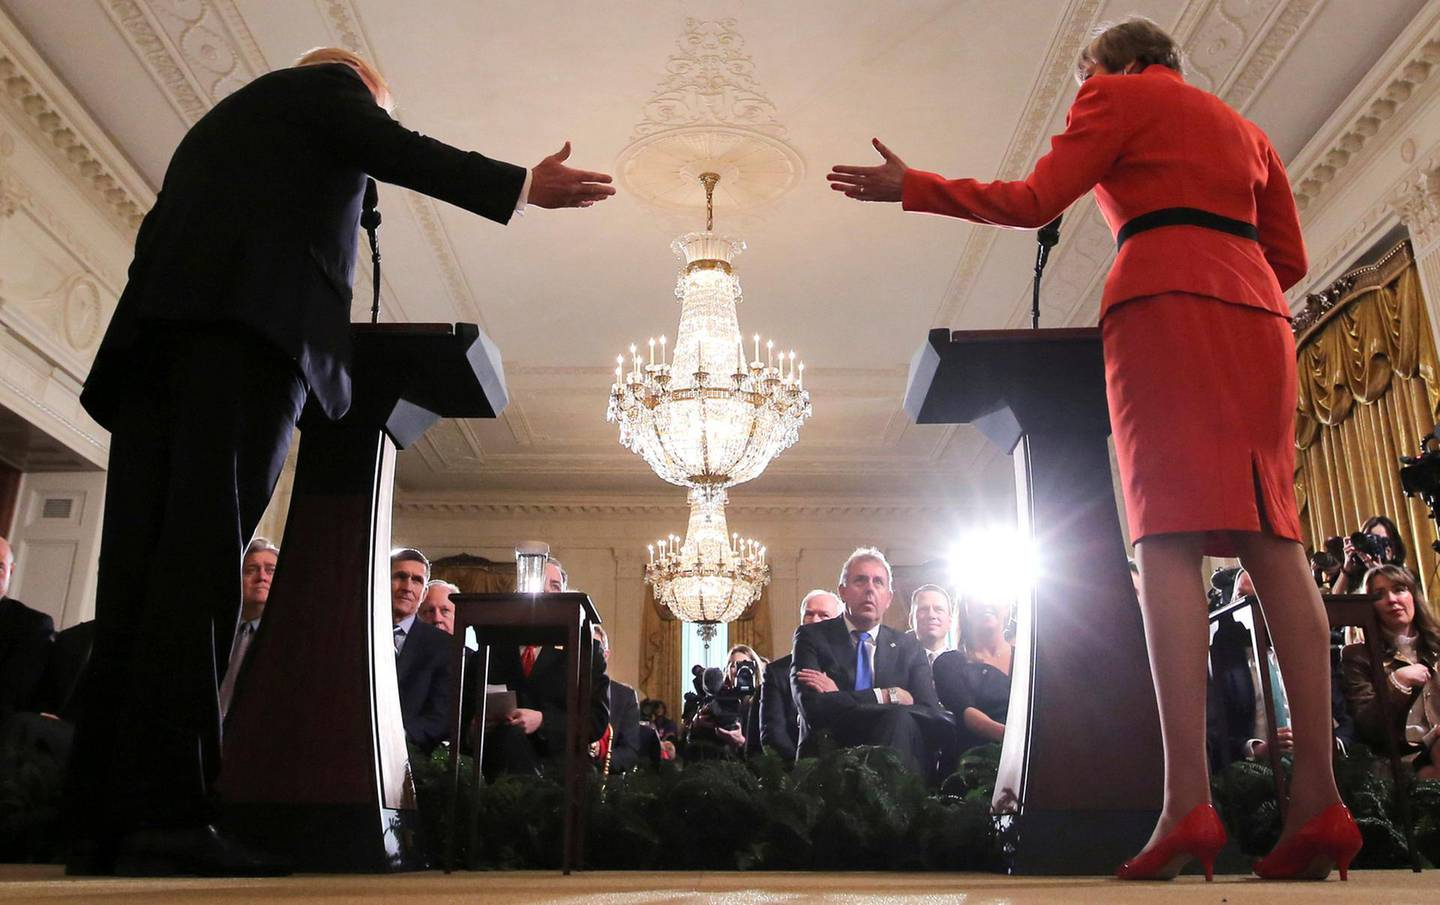 FILE PHOTO: Britain's ambassador to the United States Kim Darroch (C) listens as U.S. President Donald Trump and British Prime Minister Theresa May hold a joint news conference at the White House in Washington, U.S., January 27, 2017.  Picture taken January 27, 2017. REUTERS/Carlos Barria/File Photo